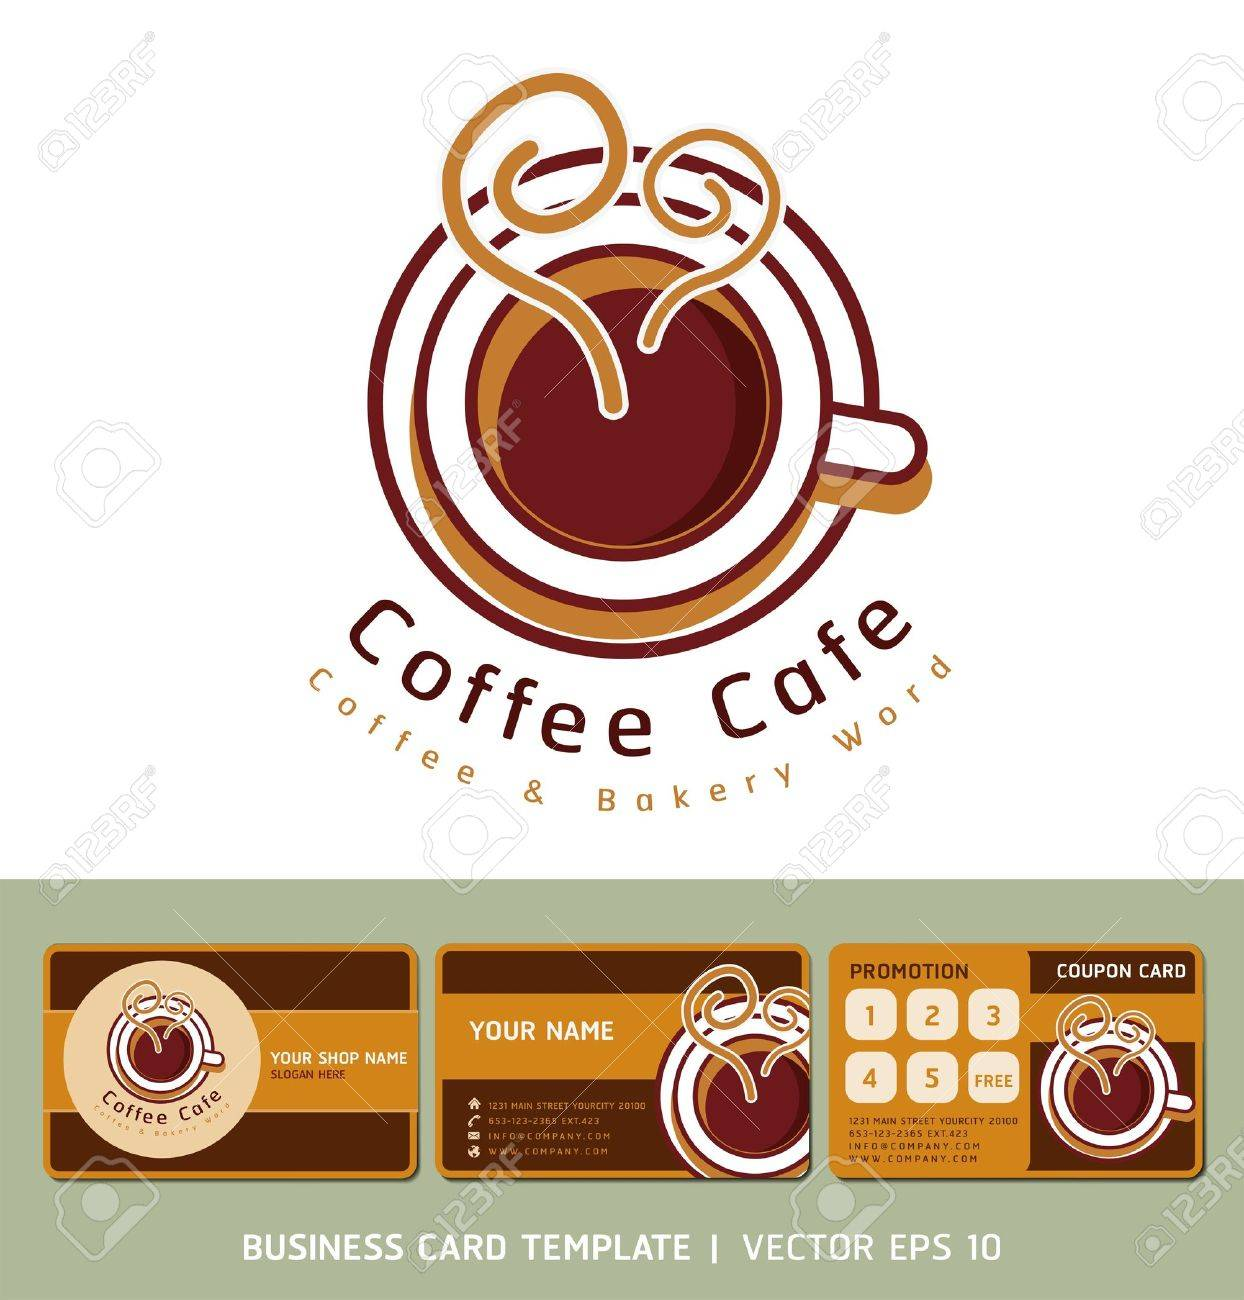 Coffee cafe icon logo and business cards royalty free cliparts coffee cafe icon logo and business cards stock vector 18759029 wajeb Images